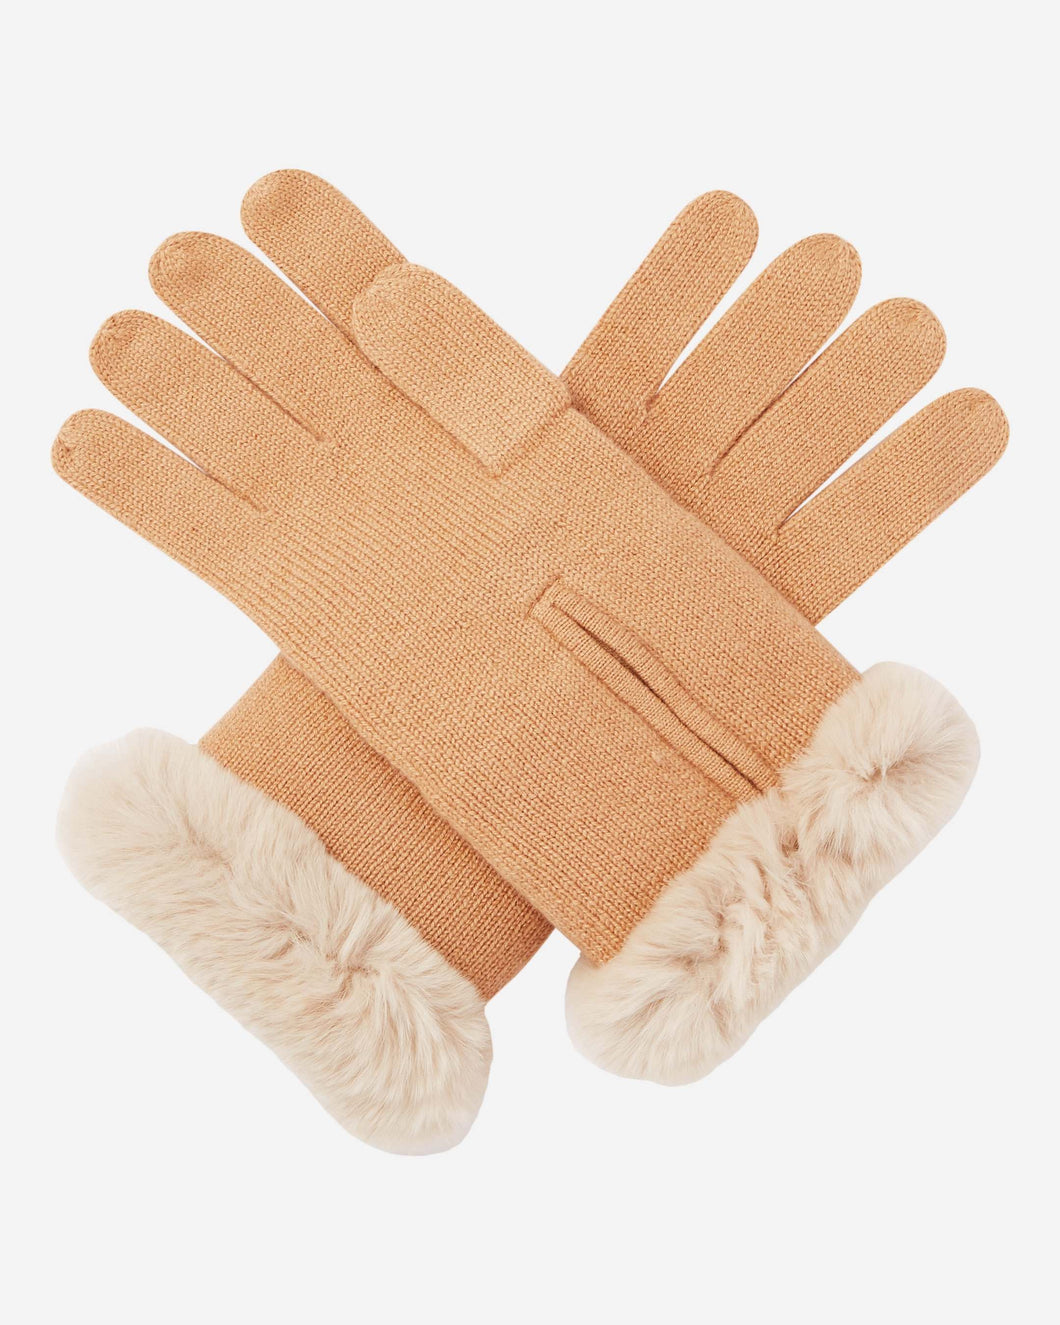 Fur And Cashmere Gloves Camel Brown + Sand Brown